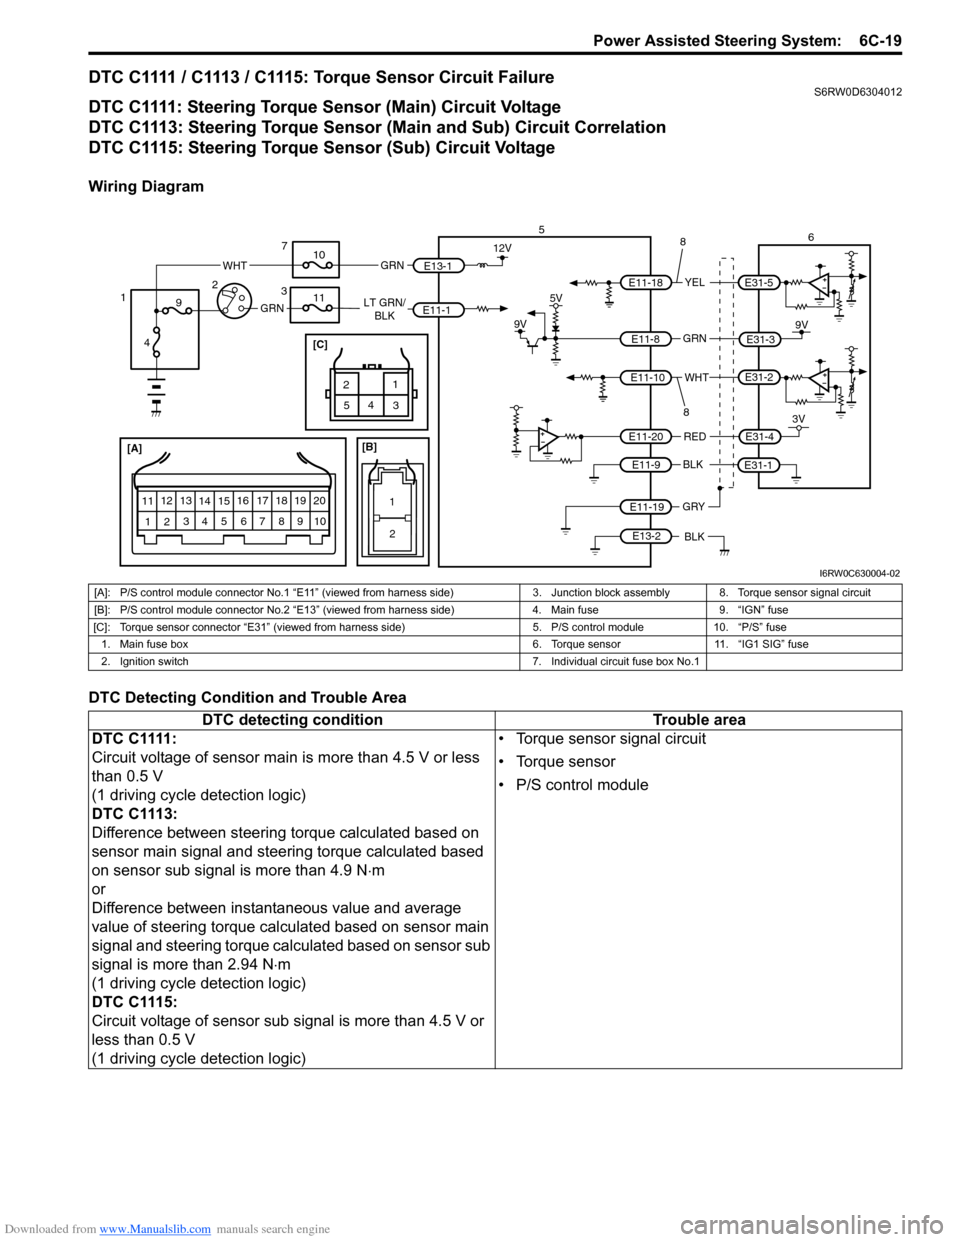 3206 cub cadet wiring diagram 7d8 fuse box on suzuki sx4 wiring resources  7d8 fuse box on suzuki sx4 wiring